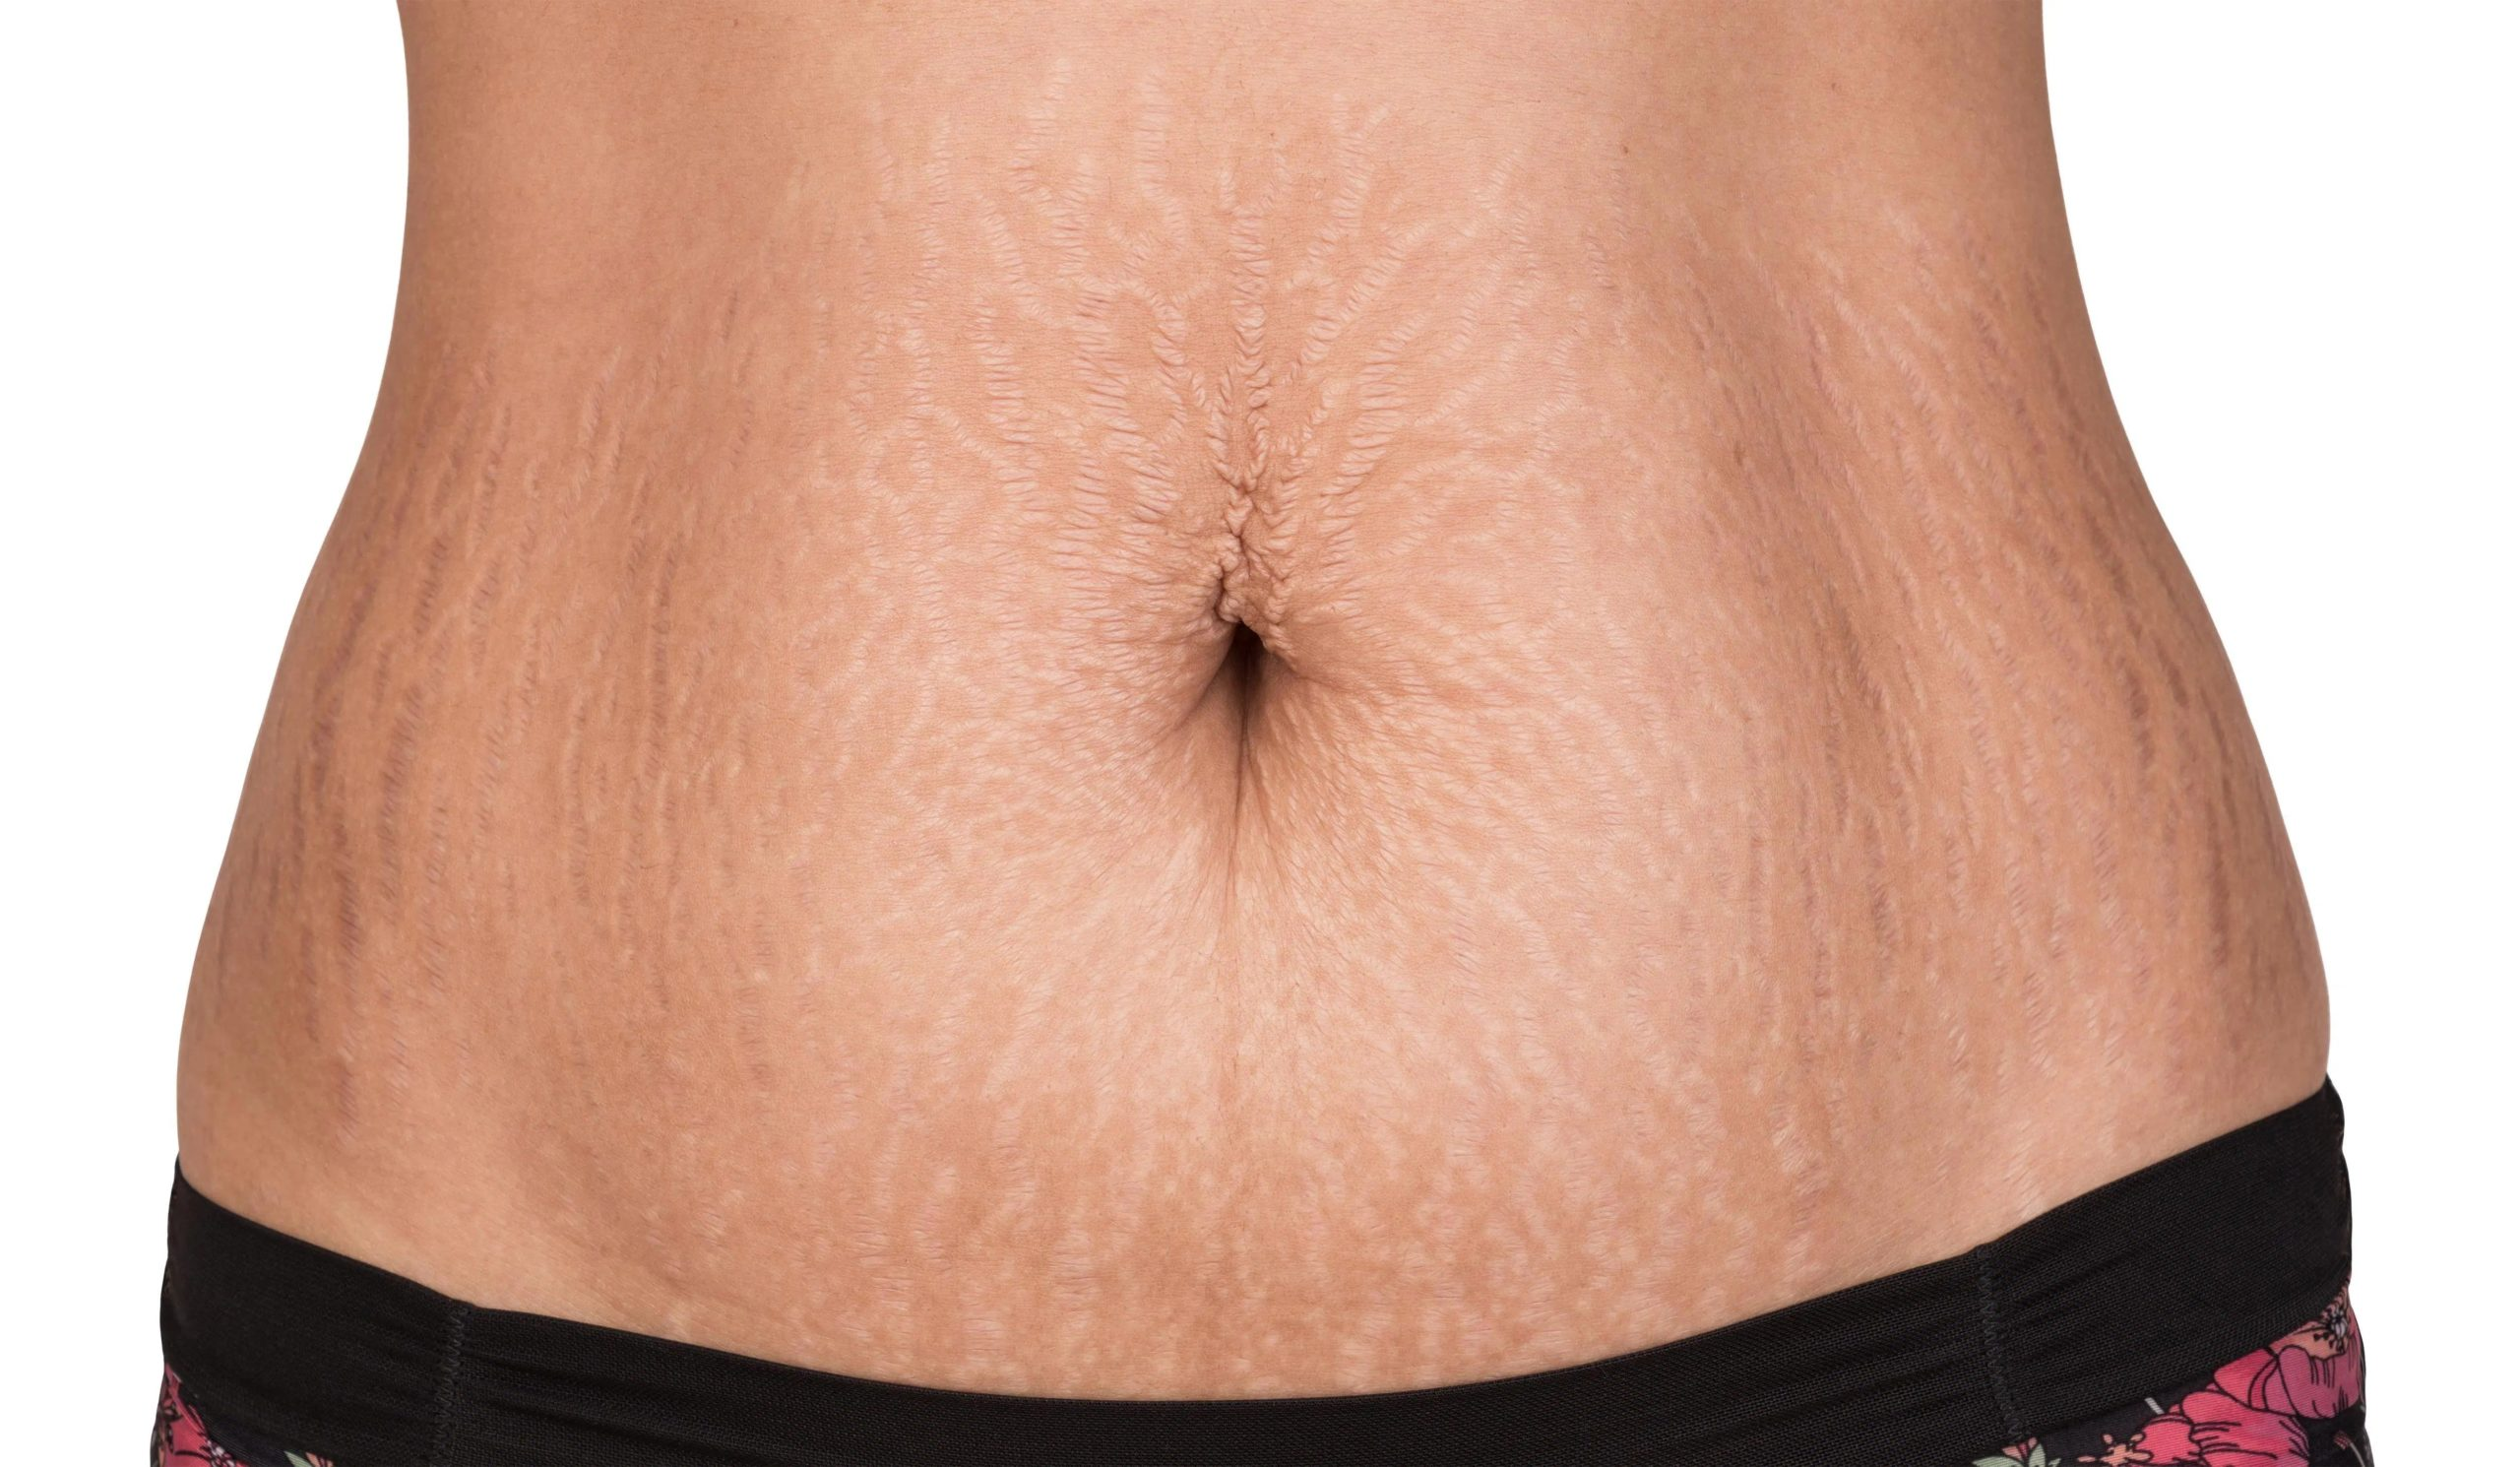 close up of a persons stomach with scarring.